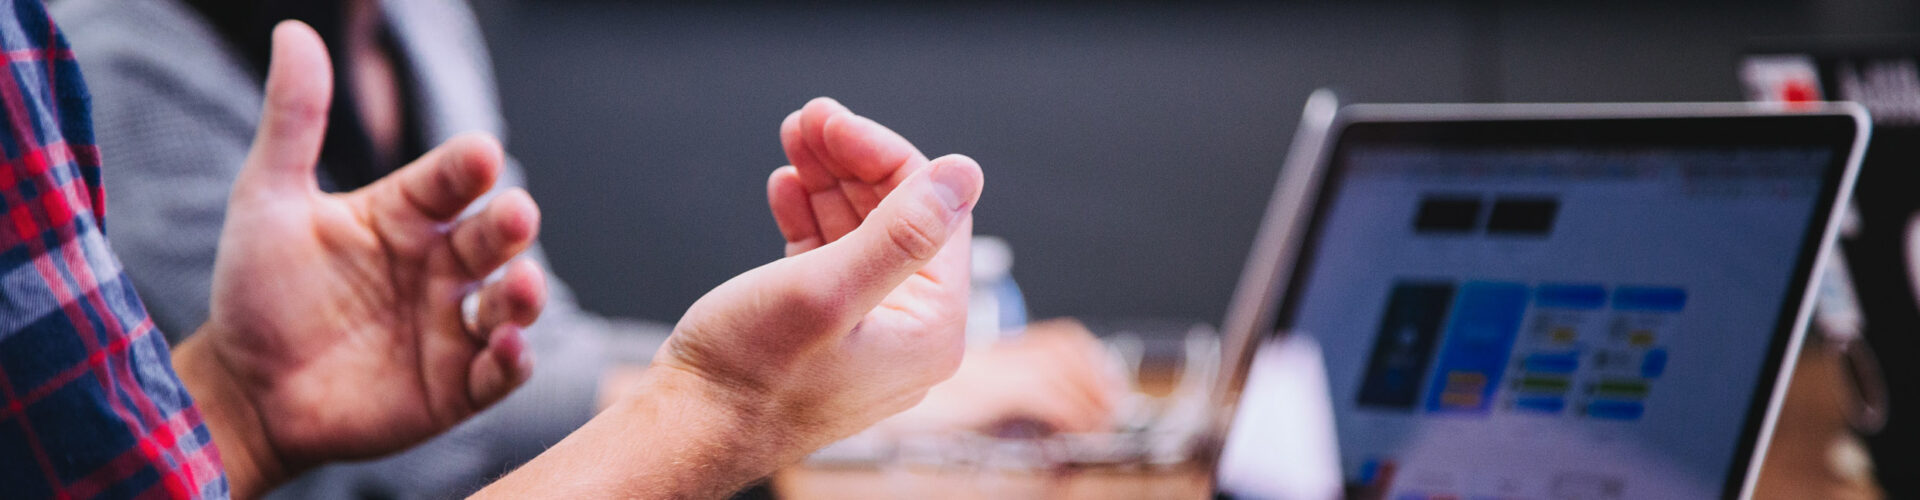 Close up of man gesturing while sitting at a boardroom table